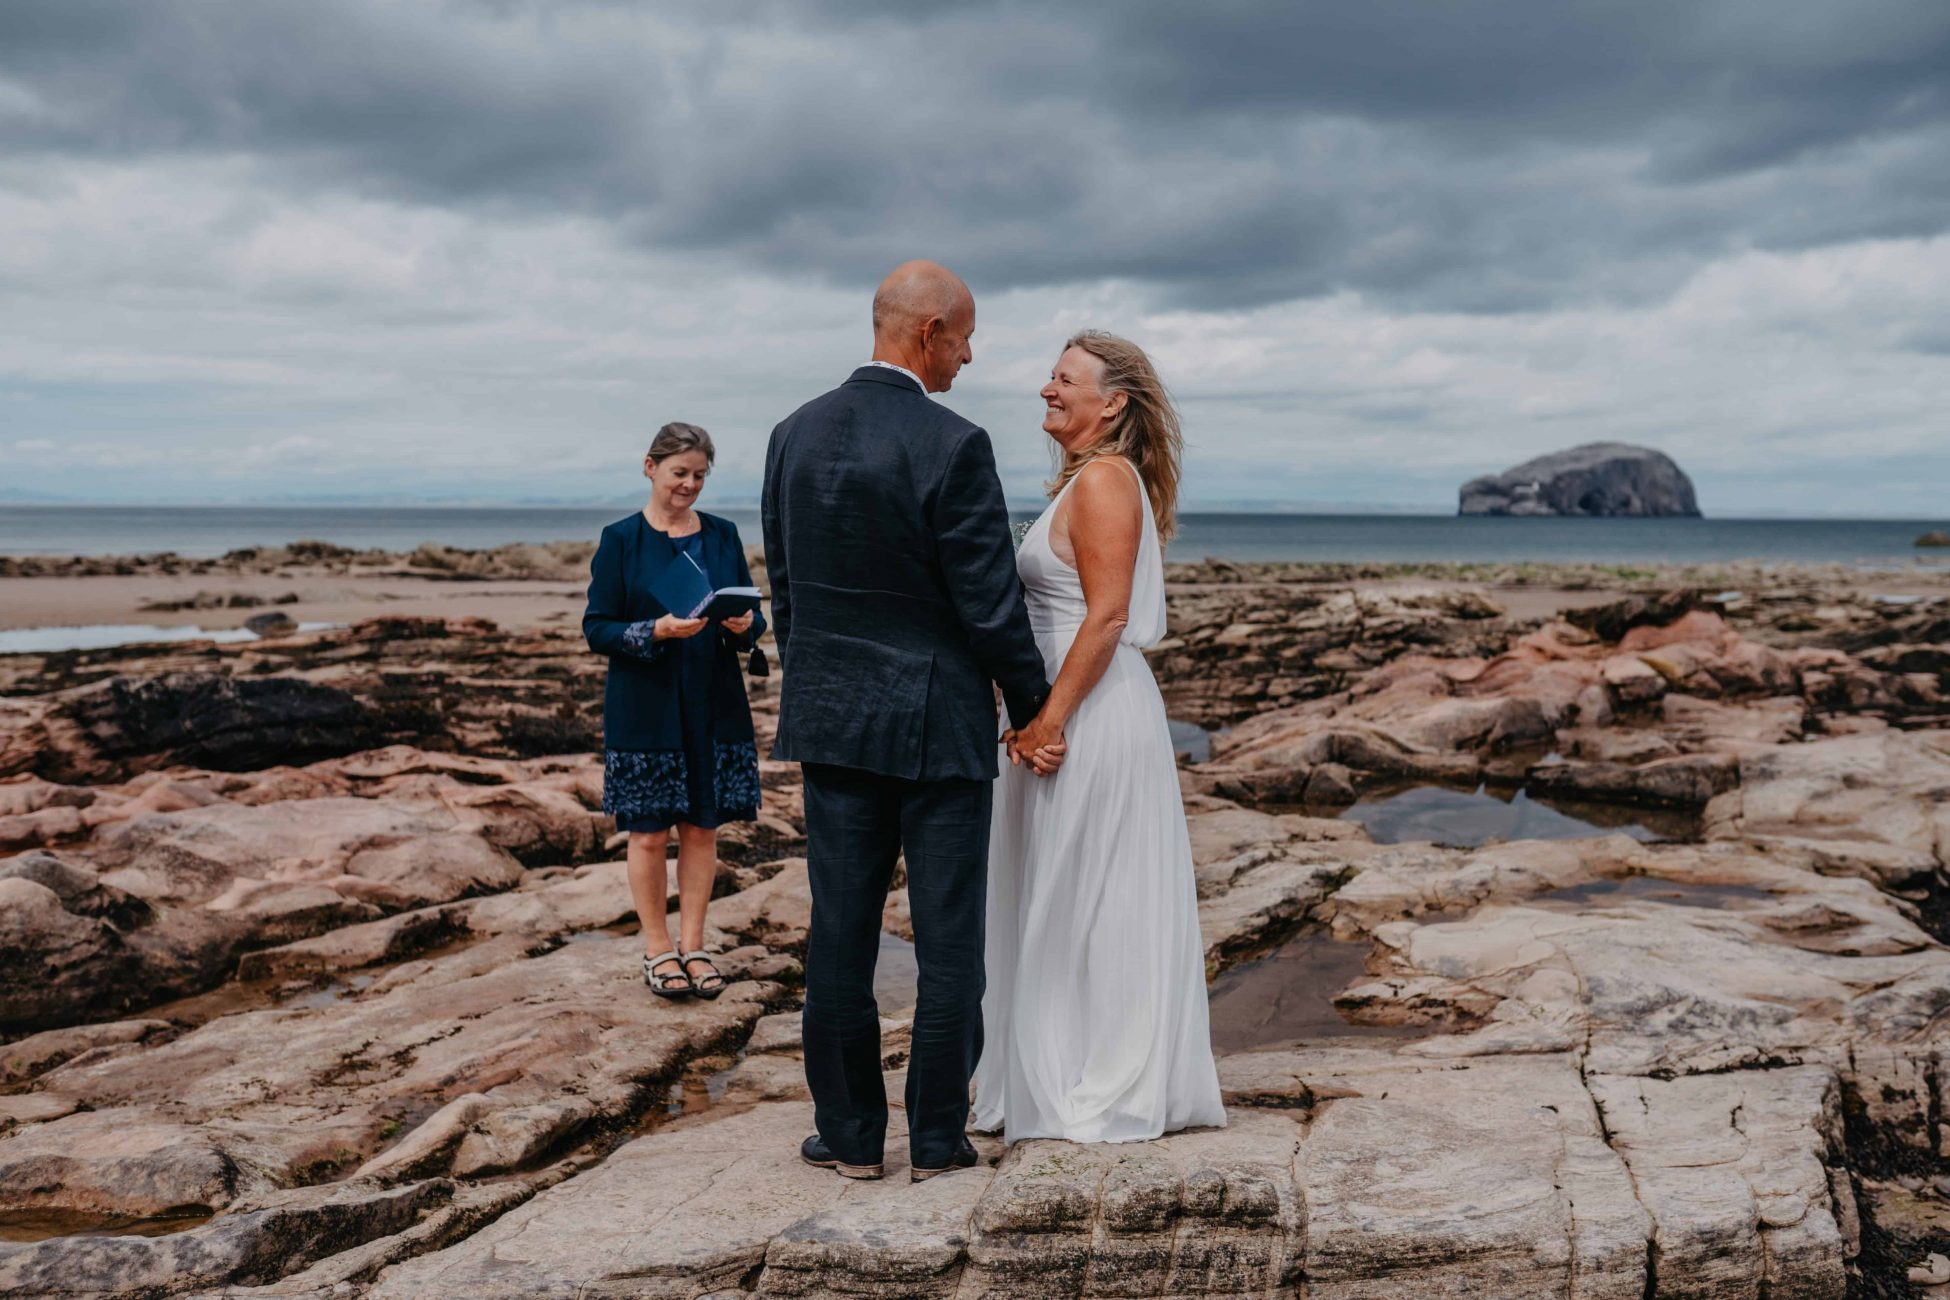 Elopement on a beach in Scotland